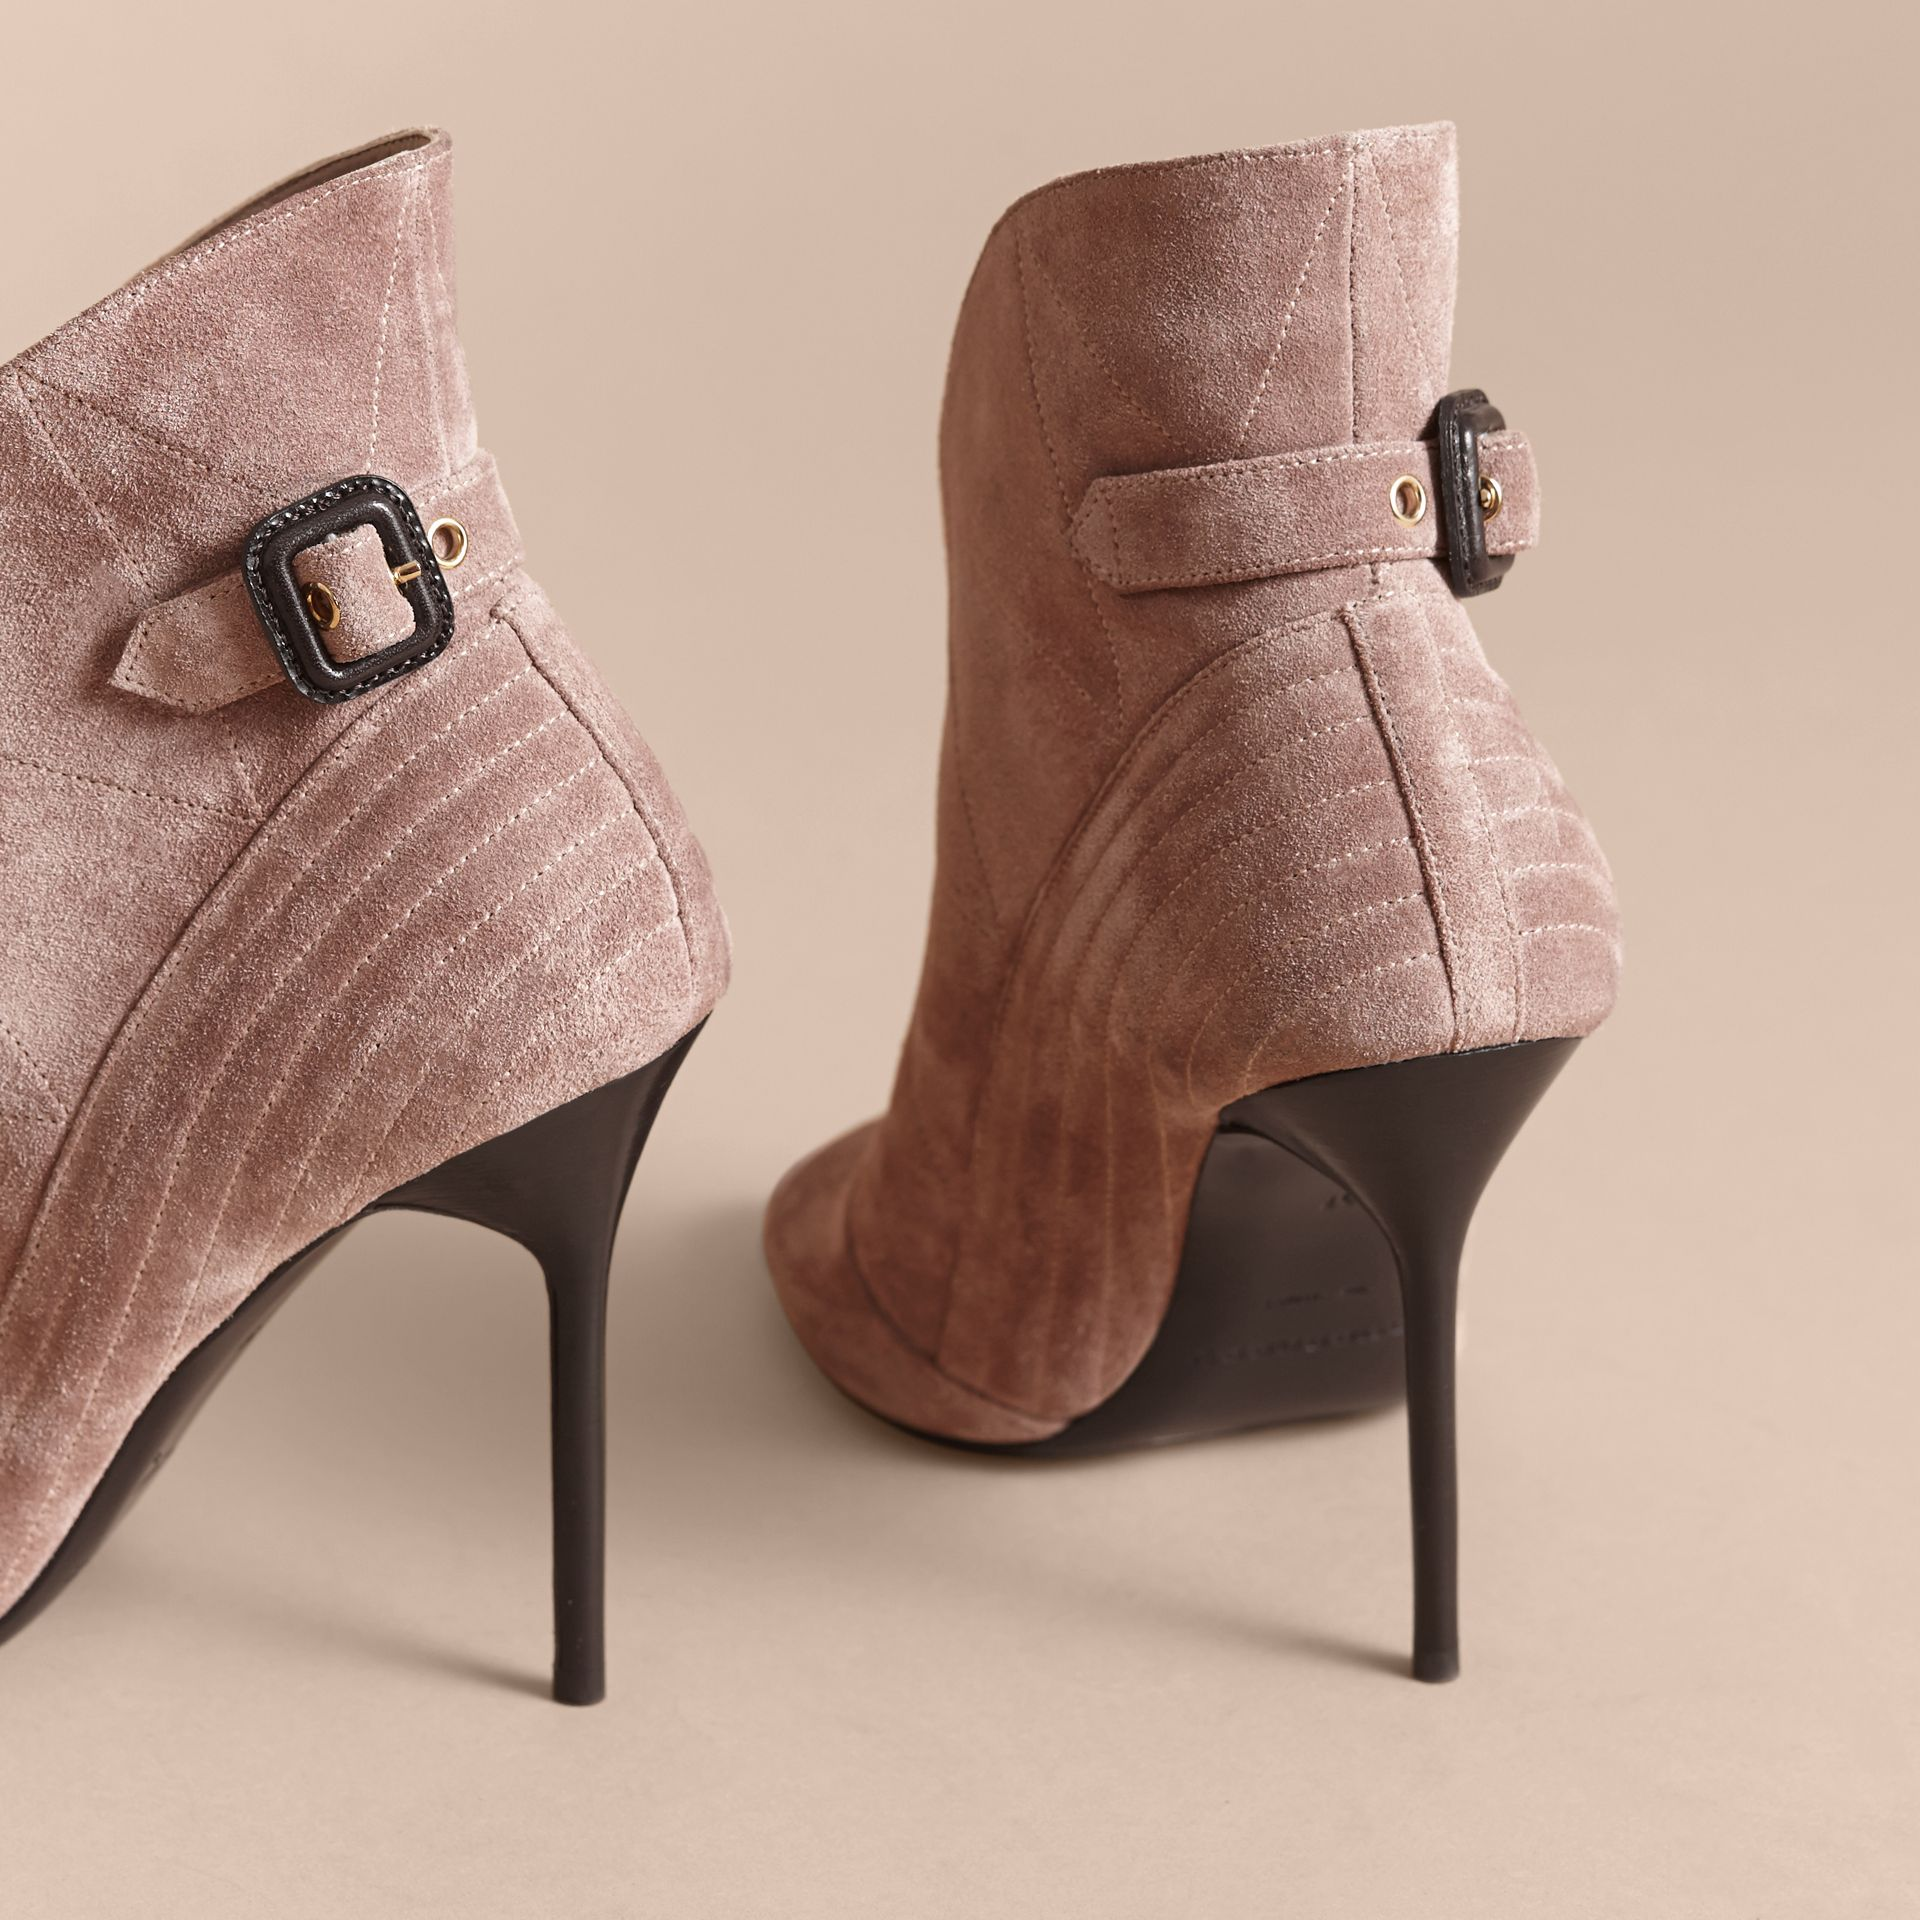 Buckle Detail Suede Peep-toe Ankle Boots in Ivory Pink - Women | Burberry Hong Kong - gallery image 4